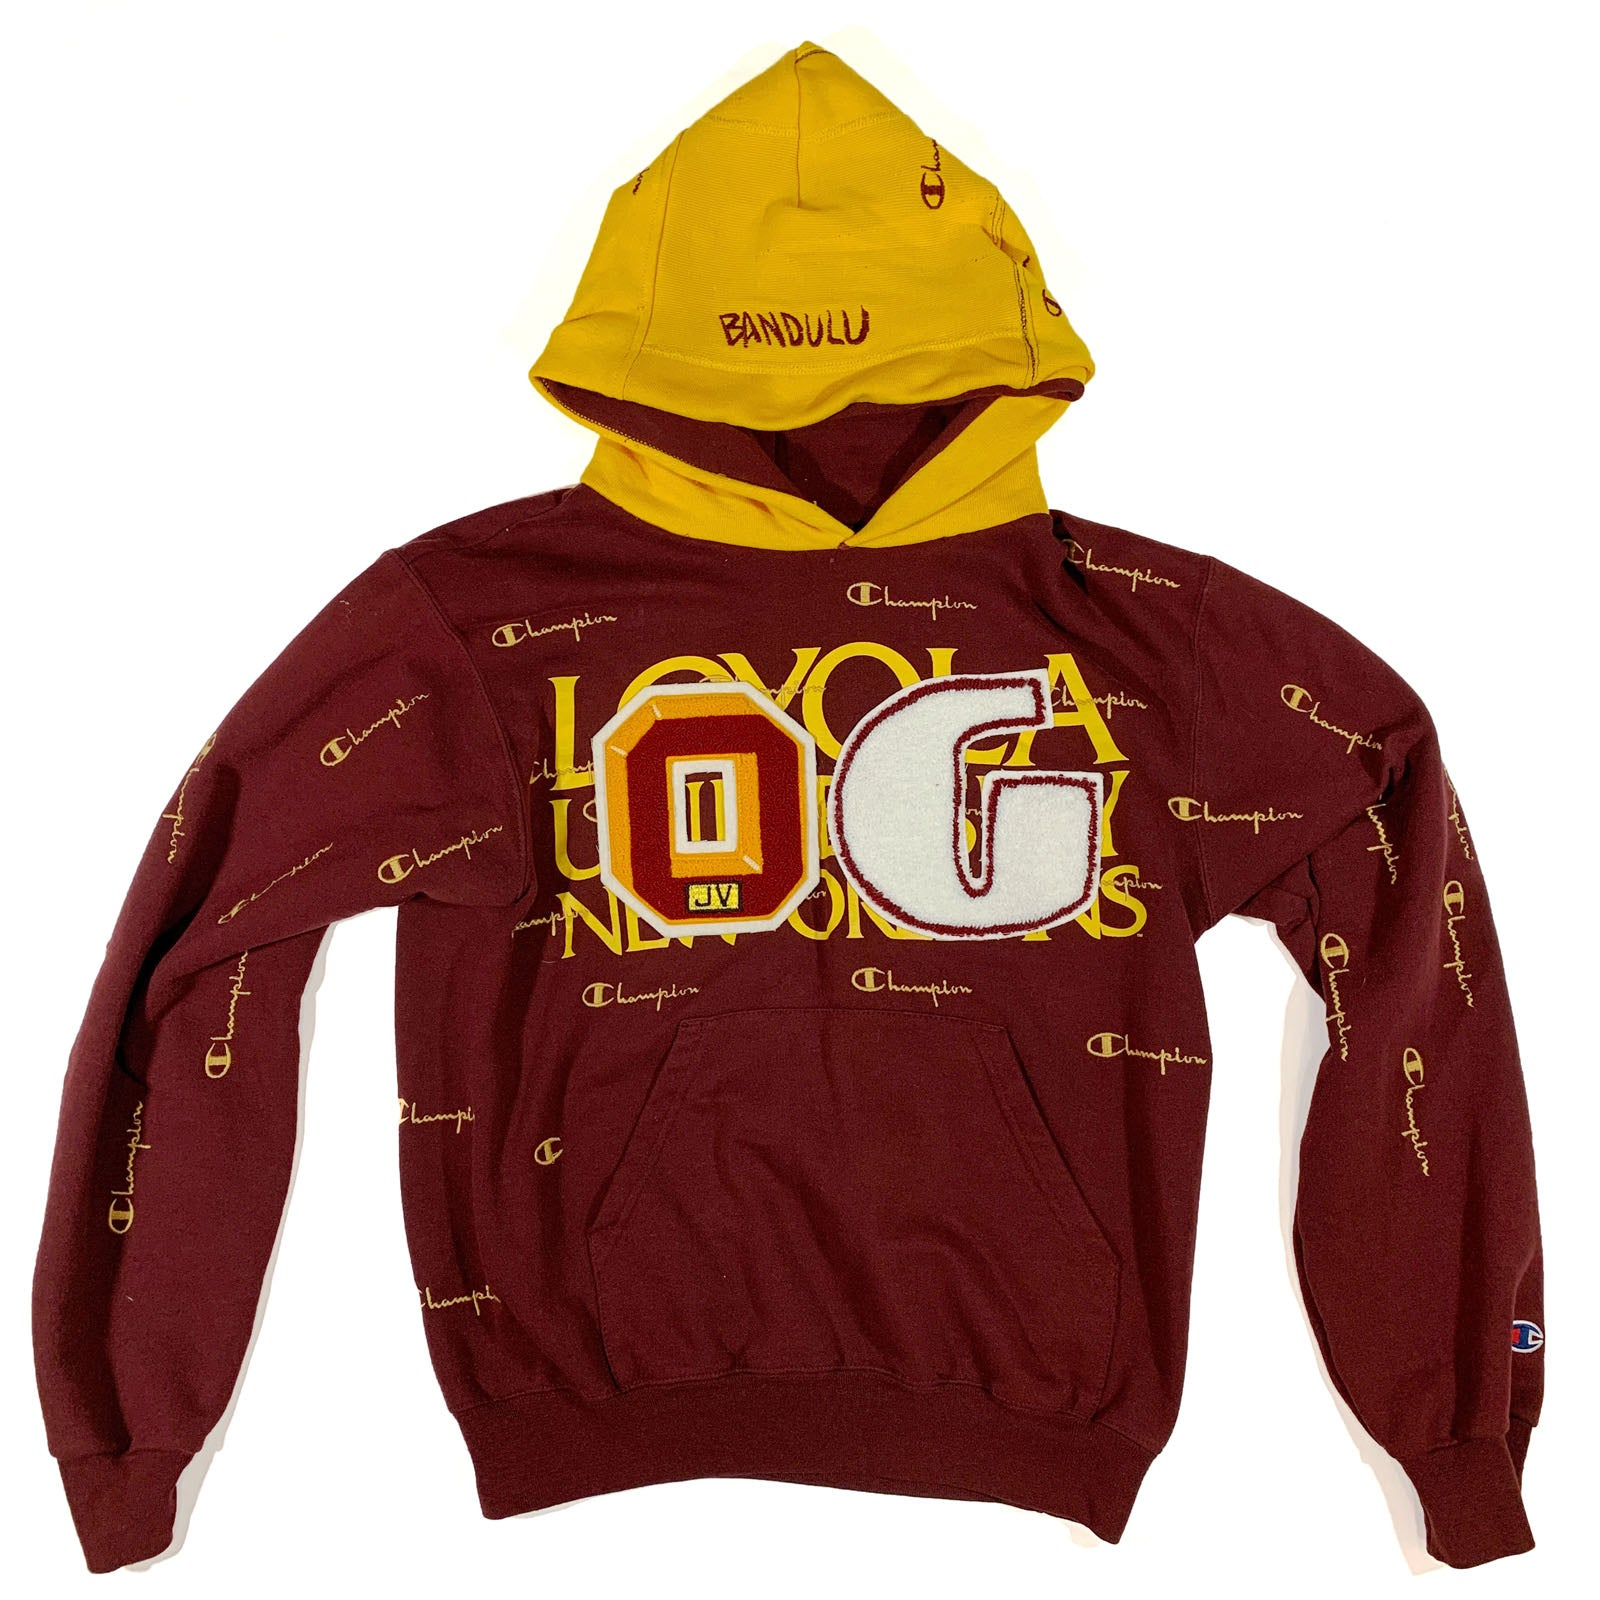 "BANDULU "" ROYAL RULING "" CHAMPION HOODIE S"